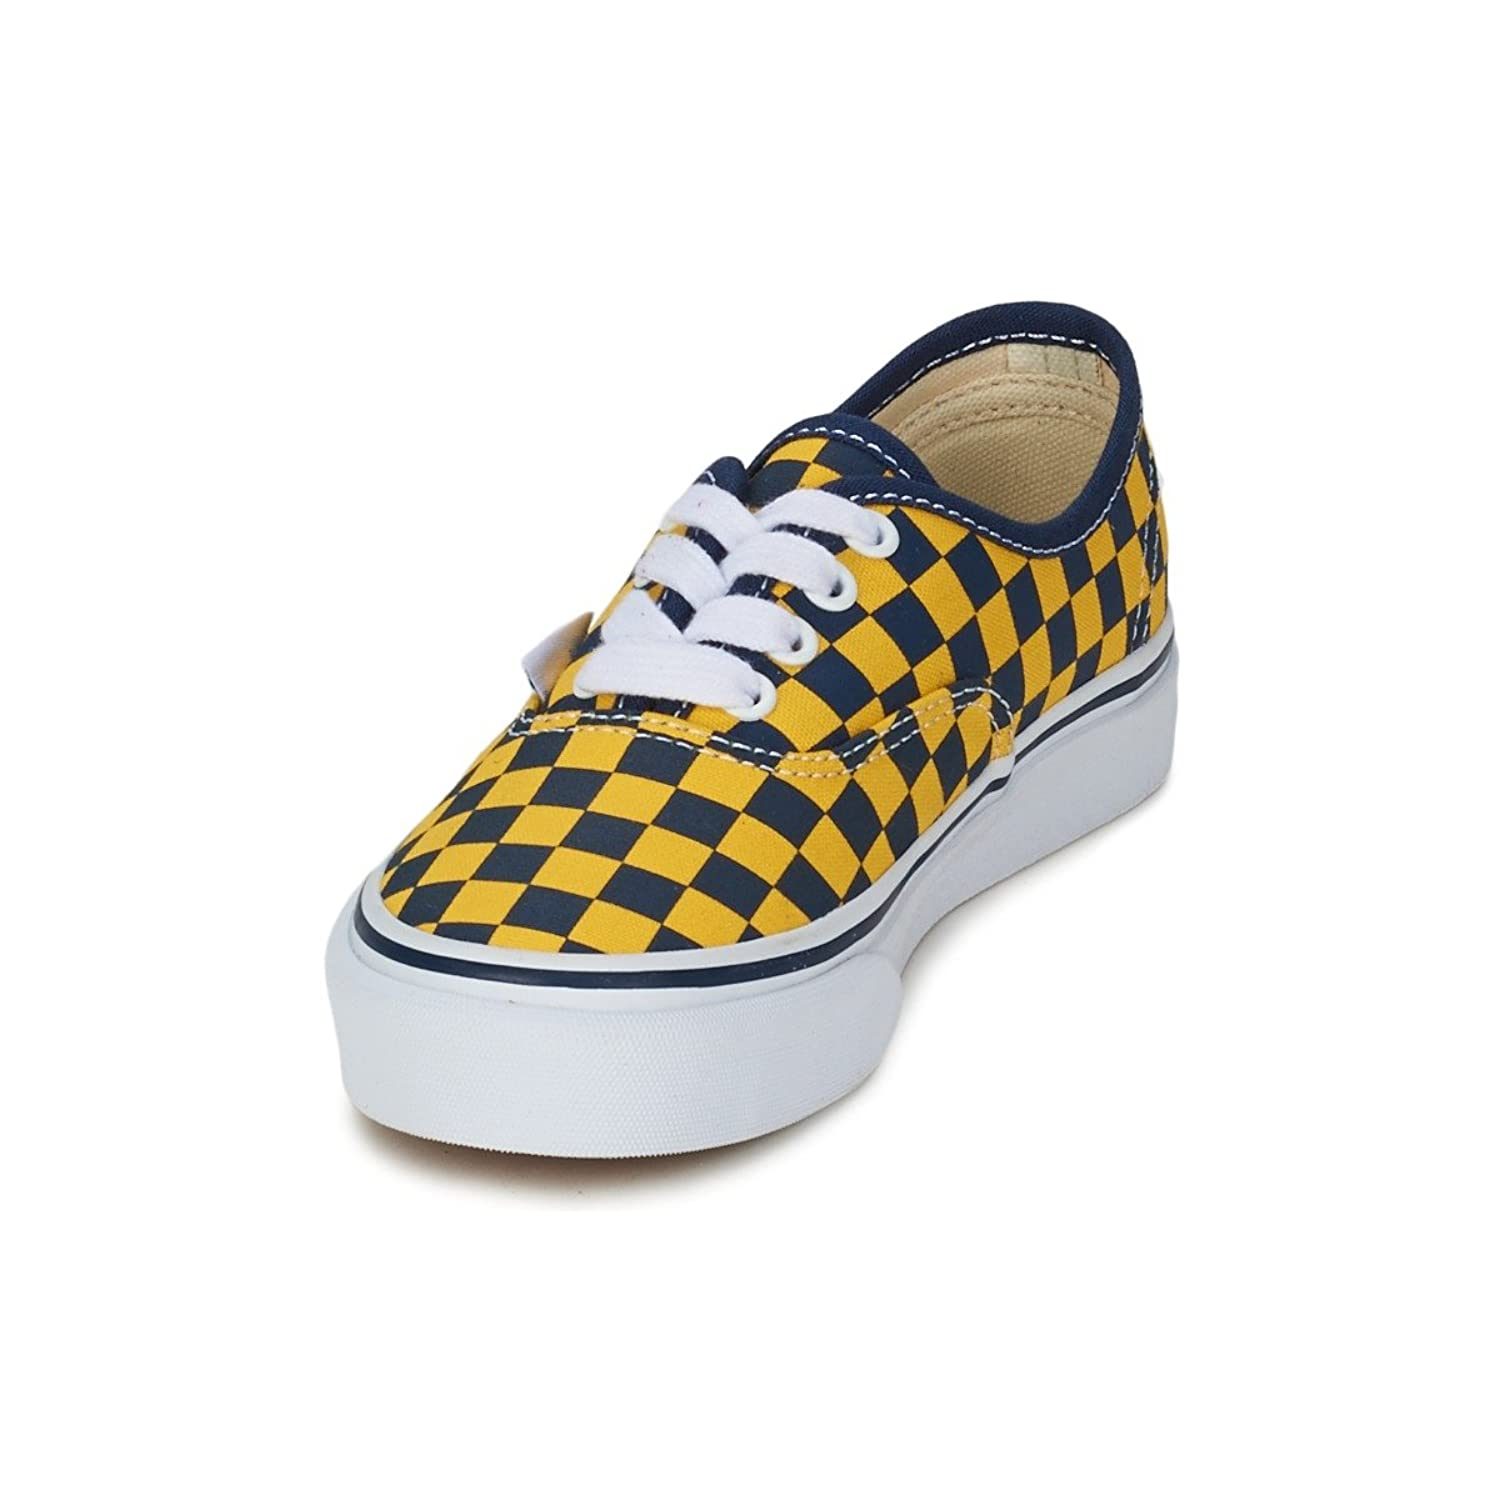 Amazon.com: Vans Mens Authentic Golden Coast Sneakers Drsblywck 10: Shoes